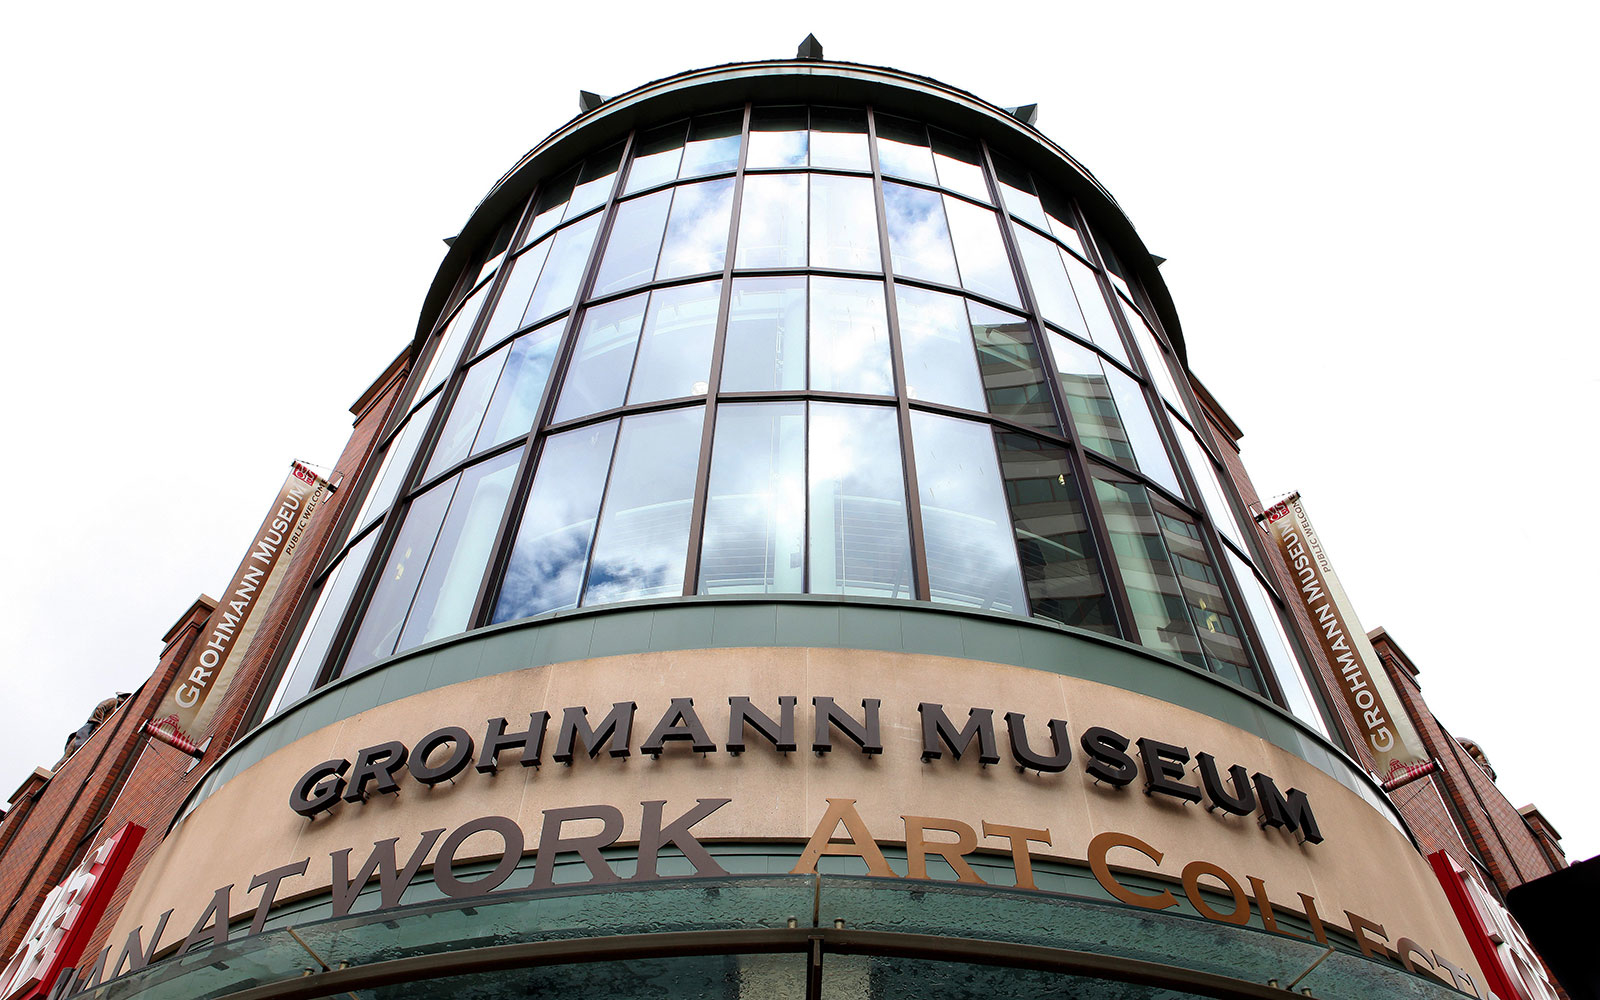 Grohmann Museum at the Milwaukee School of Engineering: Man at Work